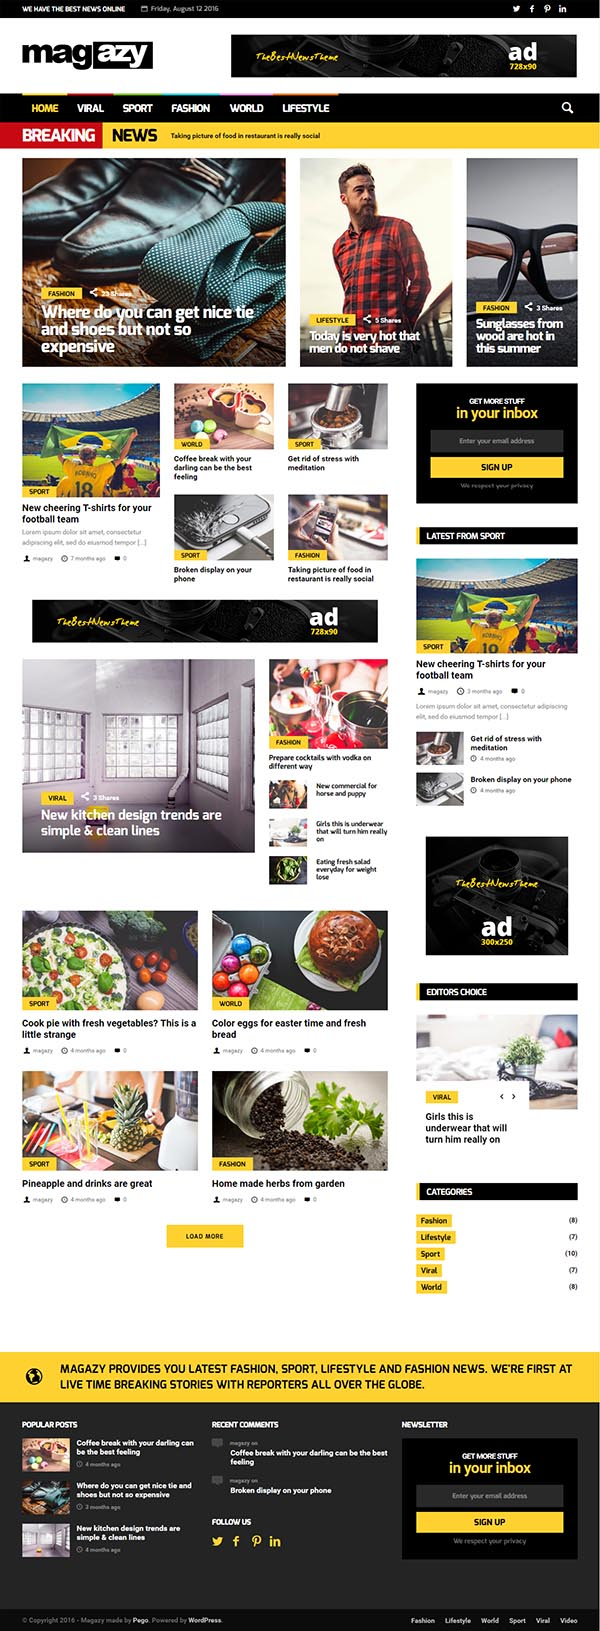 Magazy – Viral, News & Magazine WordPress Theme